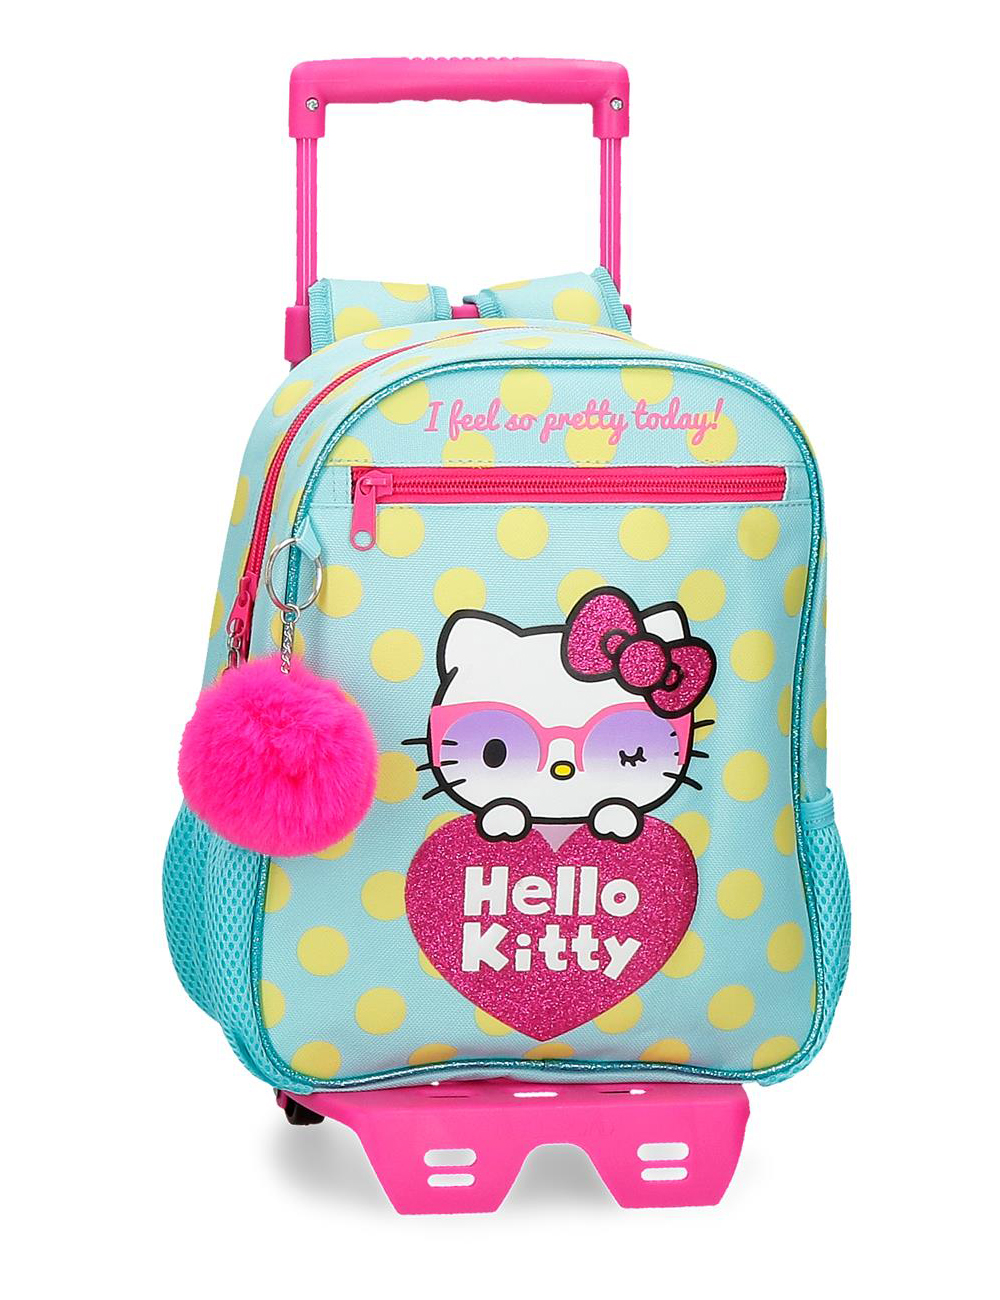 42621t1 Mochila 28cm con Ruedas Hello Kitty Pretty Glasses